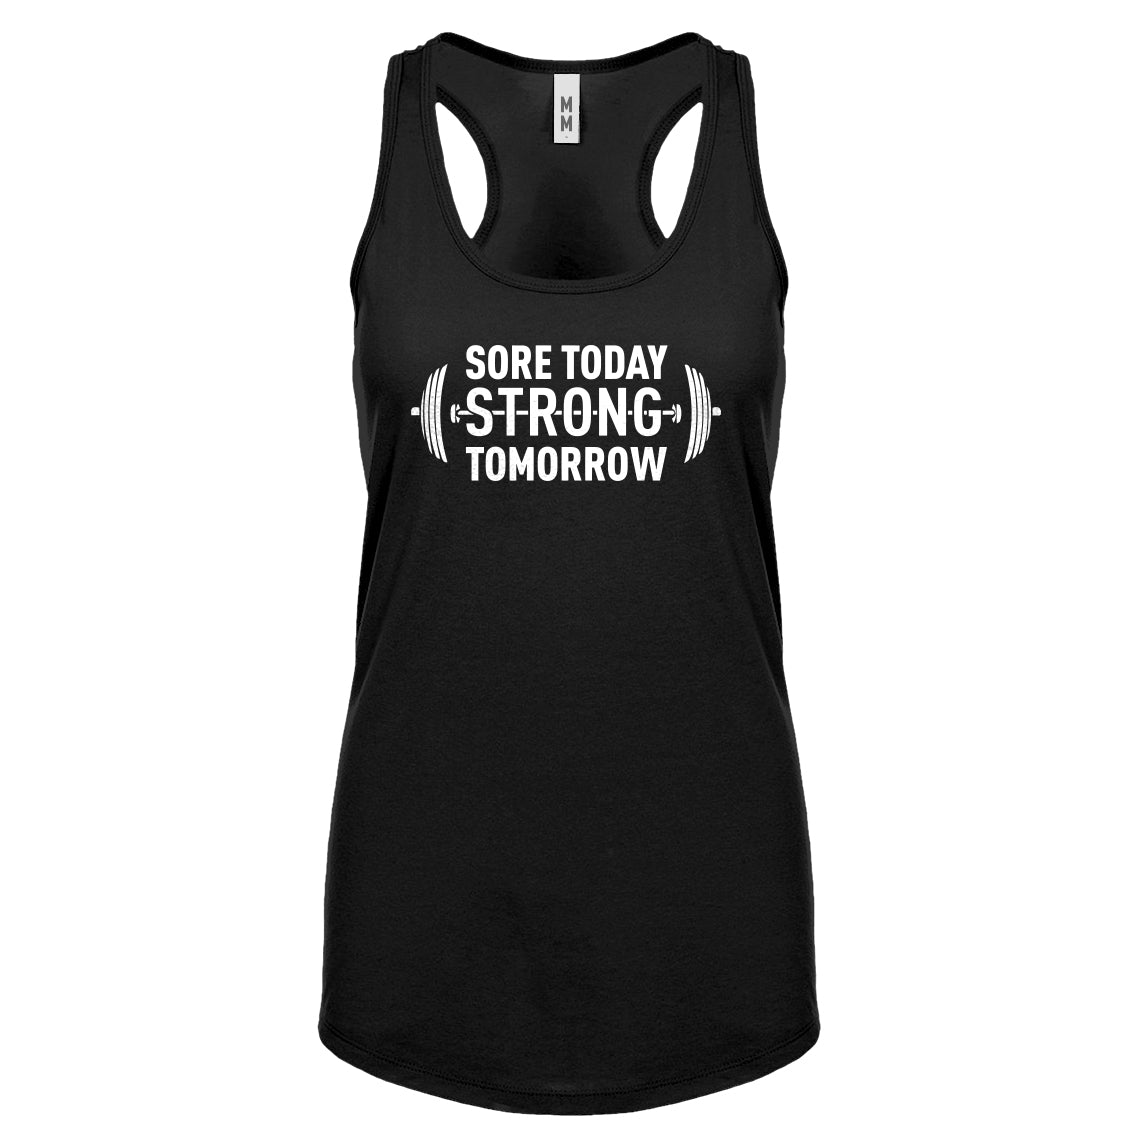 Racerback Sore Today Strong Tomorrow Womens Tank Top